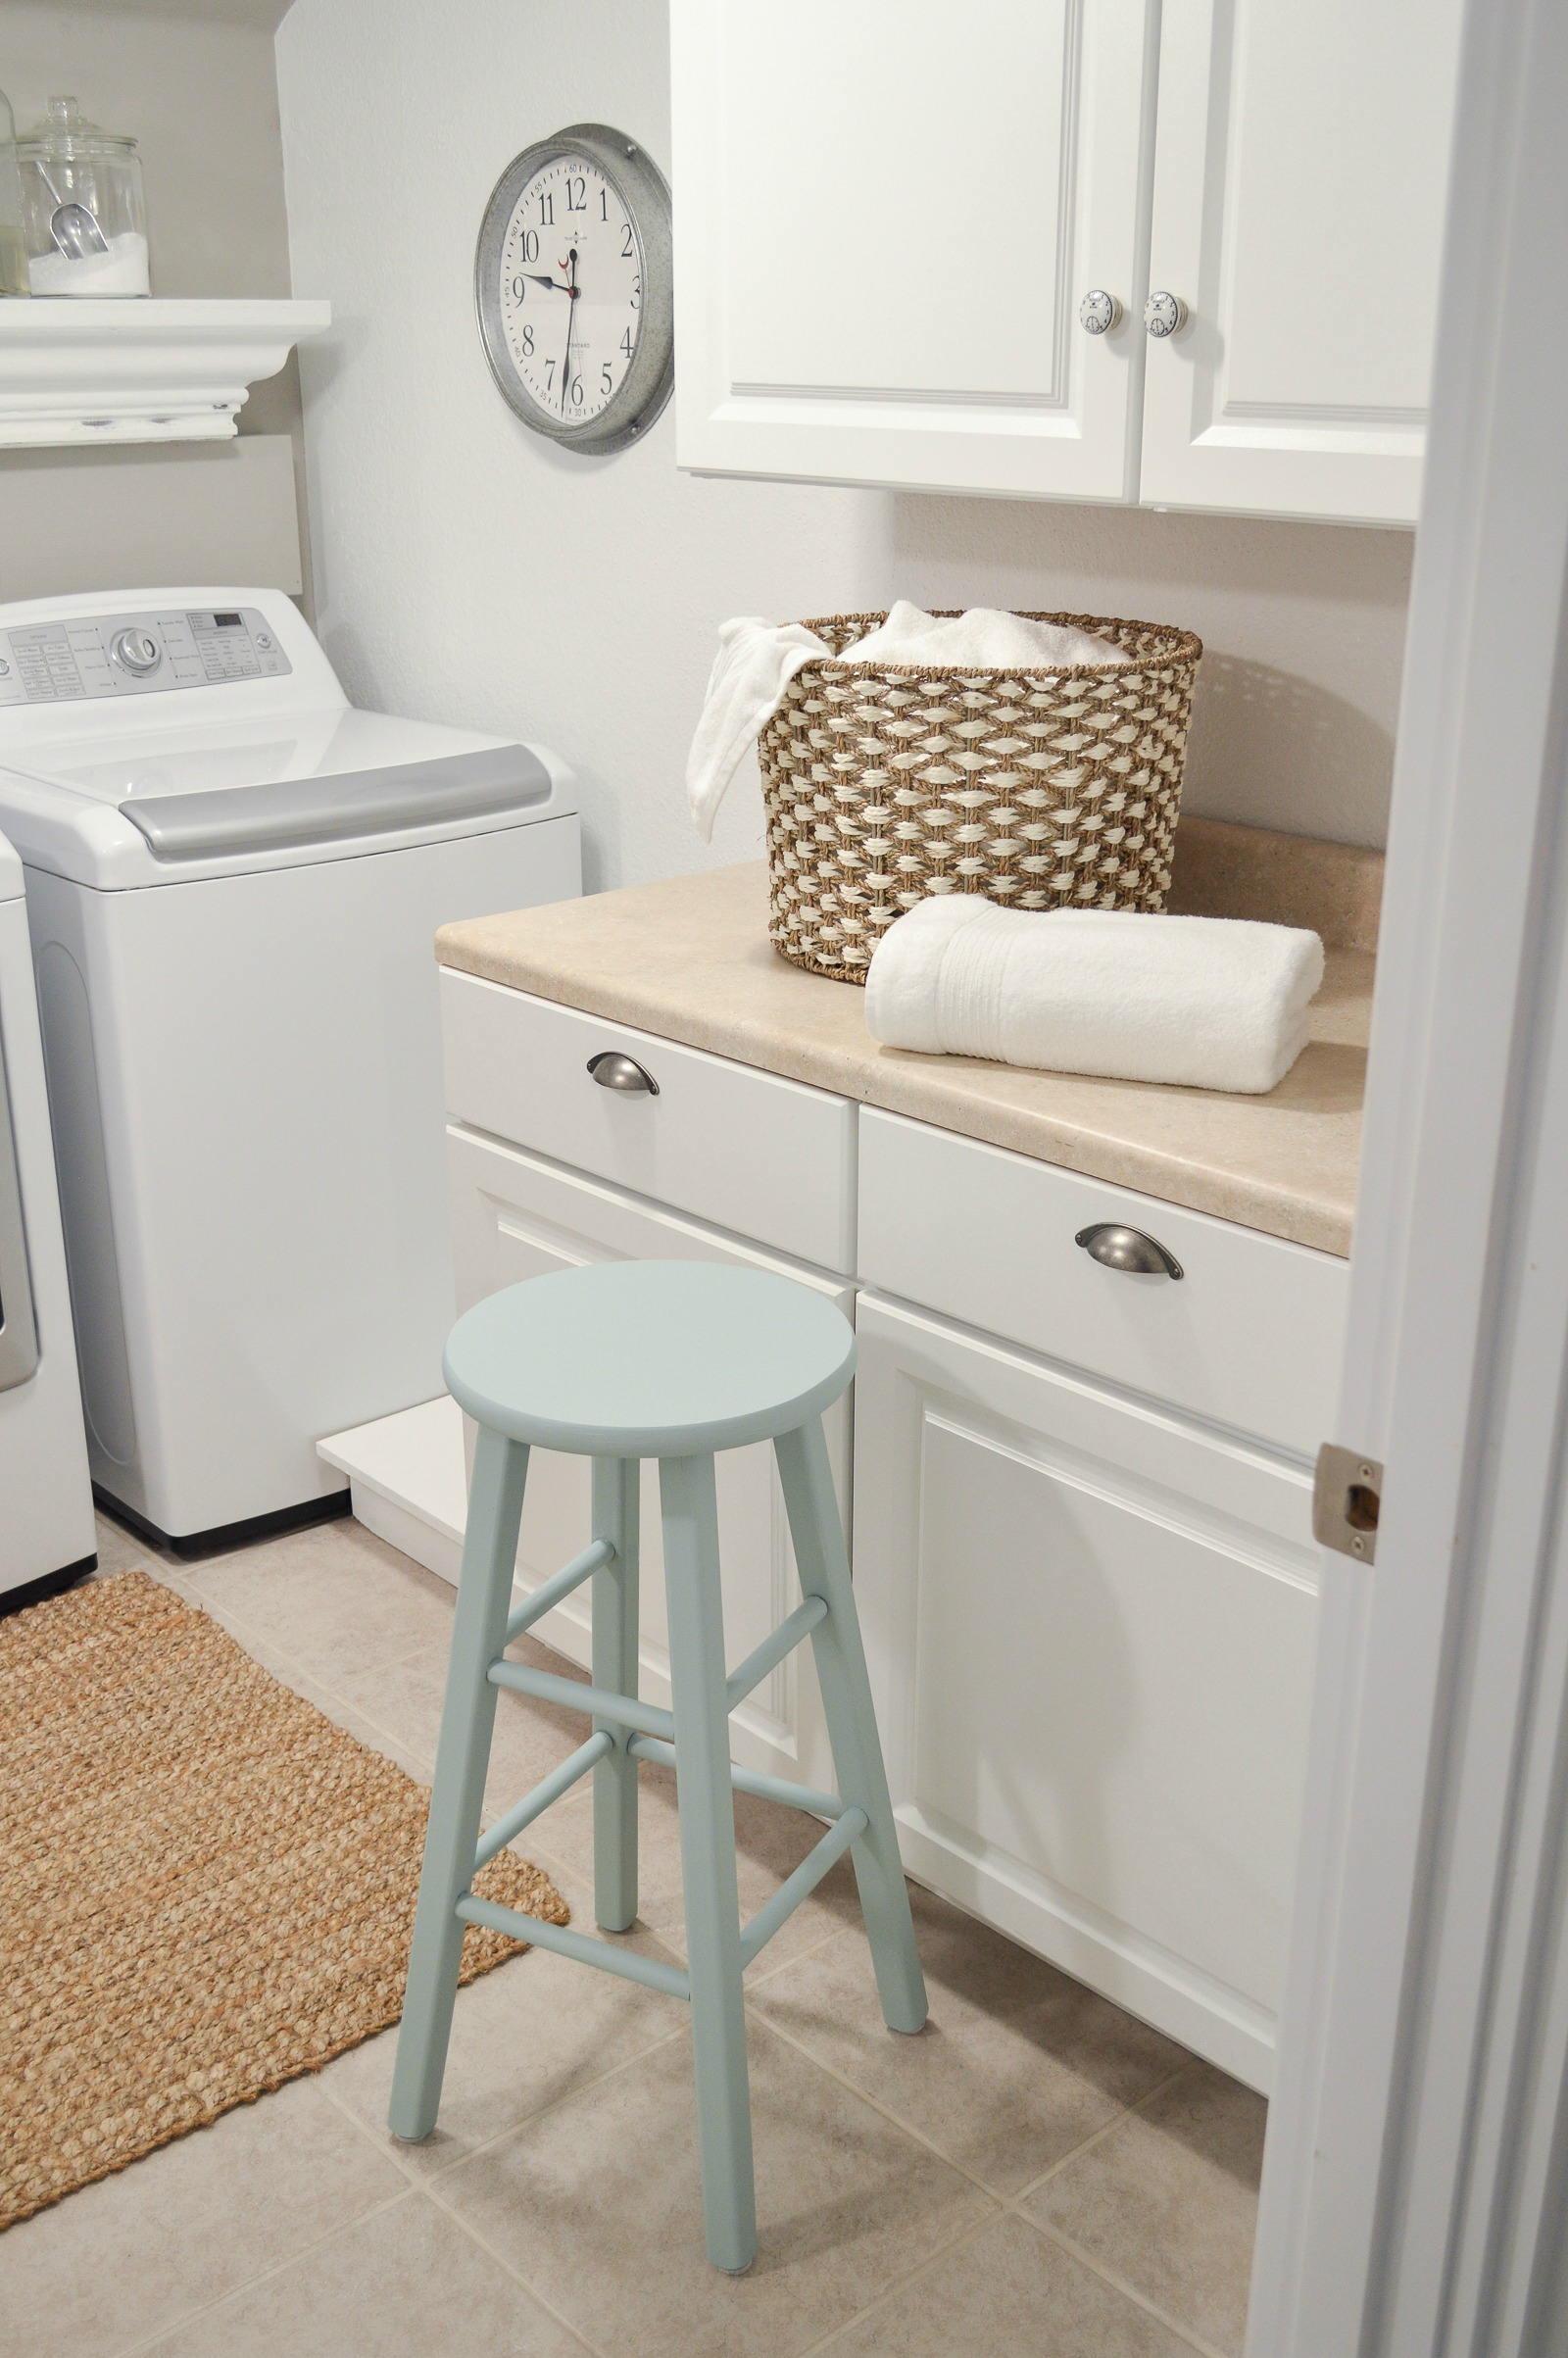 Small Space Combination Laundry Room Powder Bathroom Refresh - Simple, Organized Cottage Farmhouse Makeover with affordable pieces from the Better Homes & Gardens line at Walmart #sponsored | Details and sources www.foxhollowcottage.com